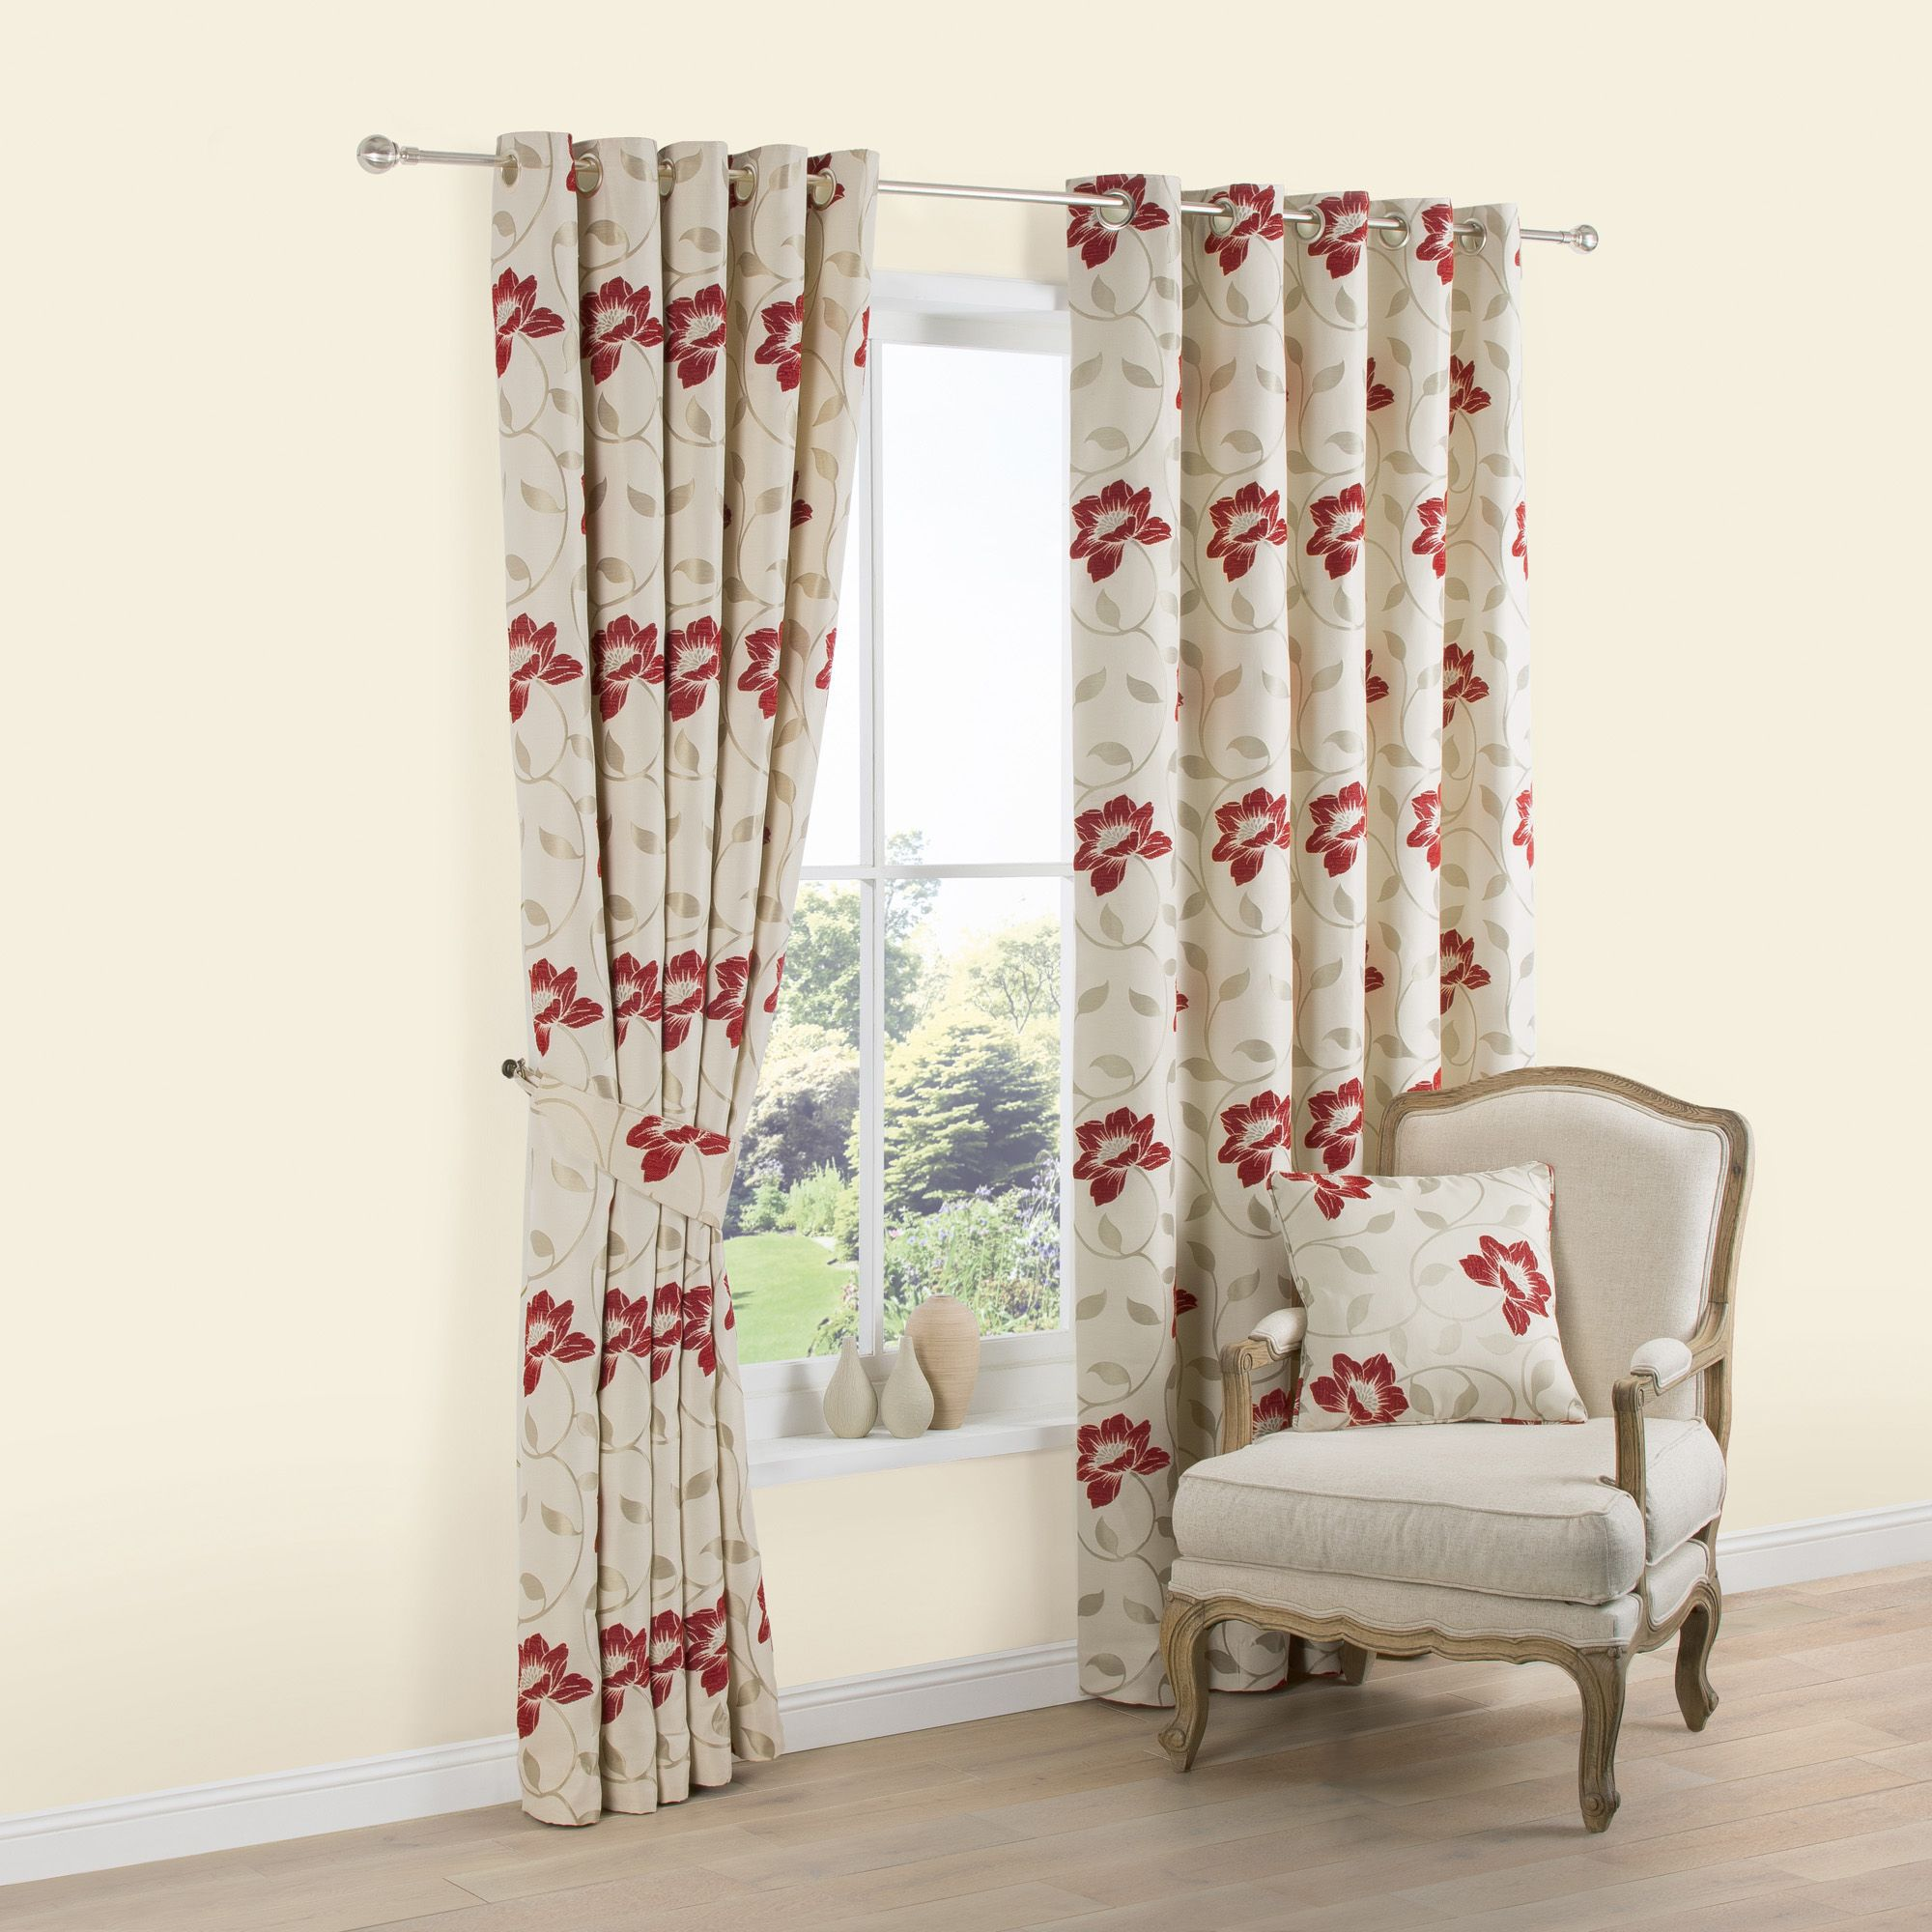 Geranium Cream Red Floral Jacquard Woven Eyelet Lined Curtains W228 Cm L228